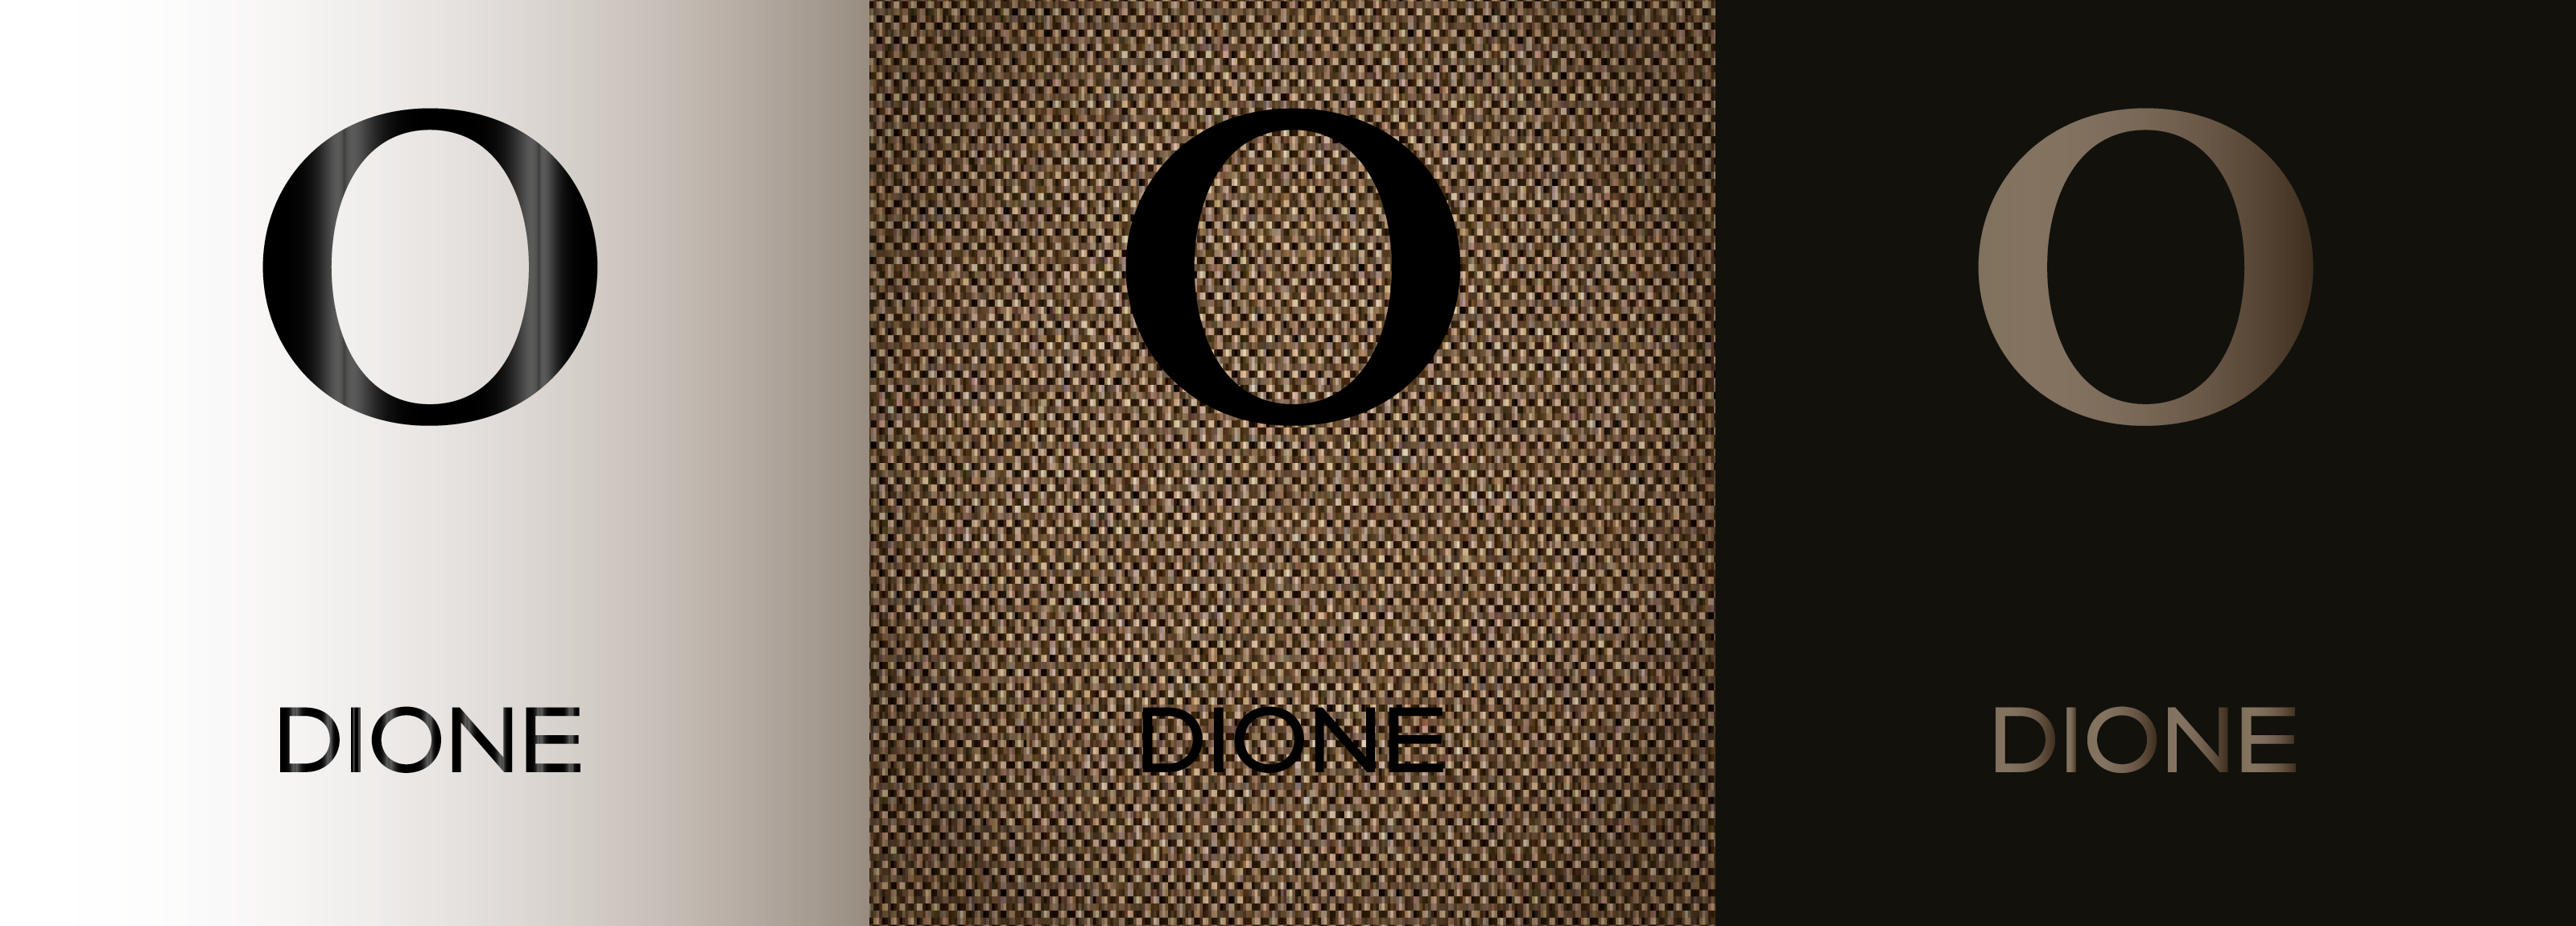 Hangar Design Group designed the brand identity for Dione